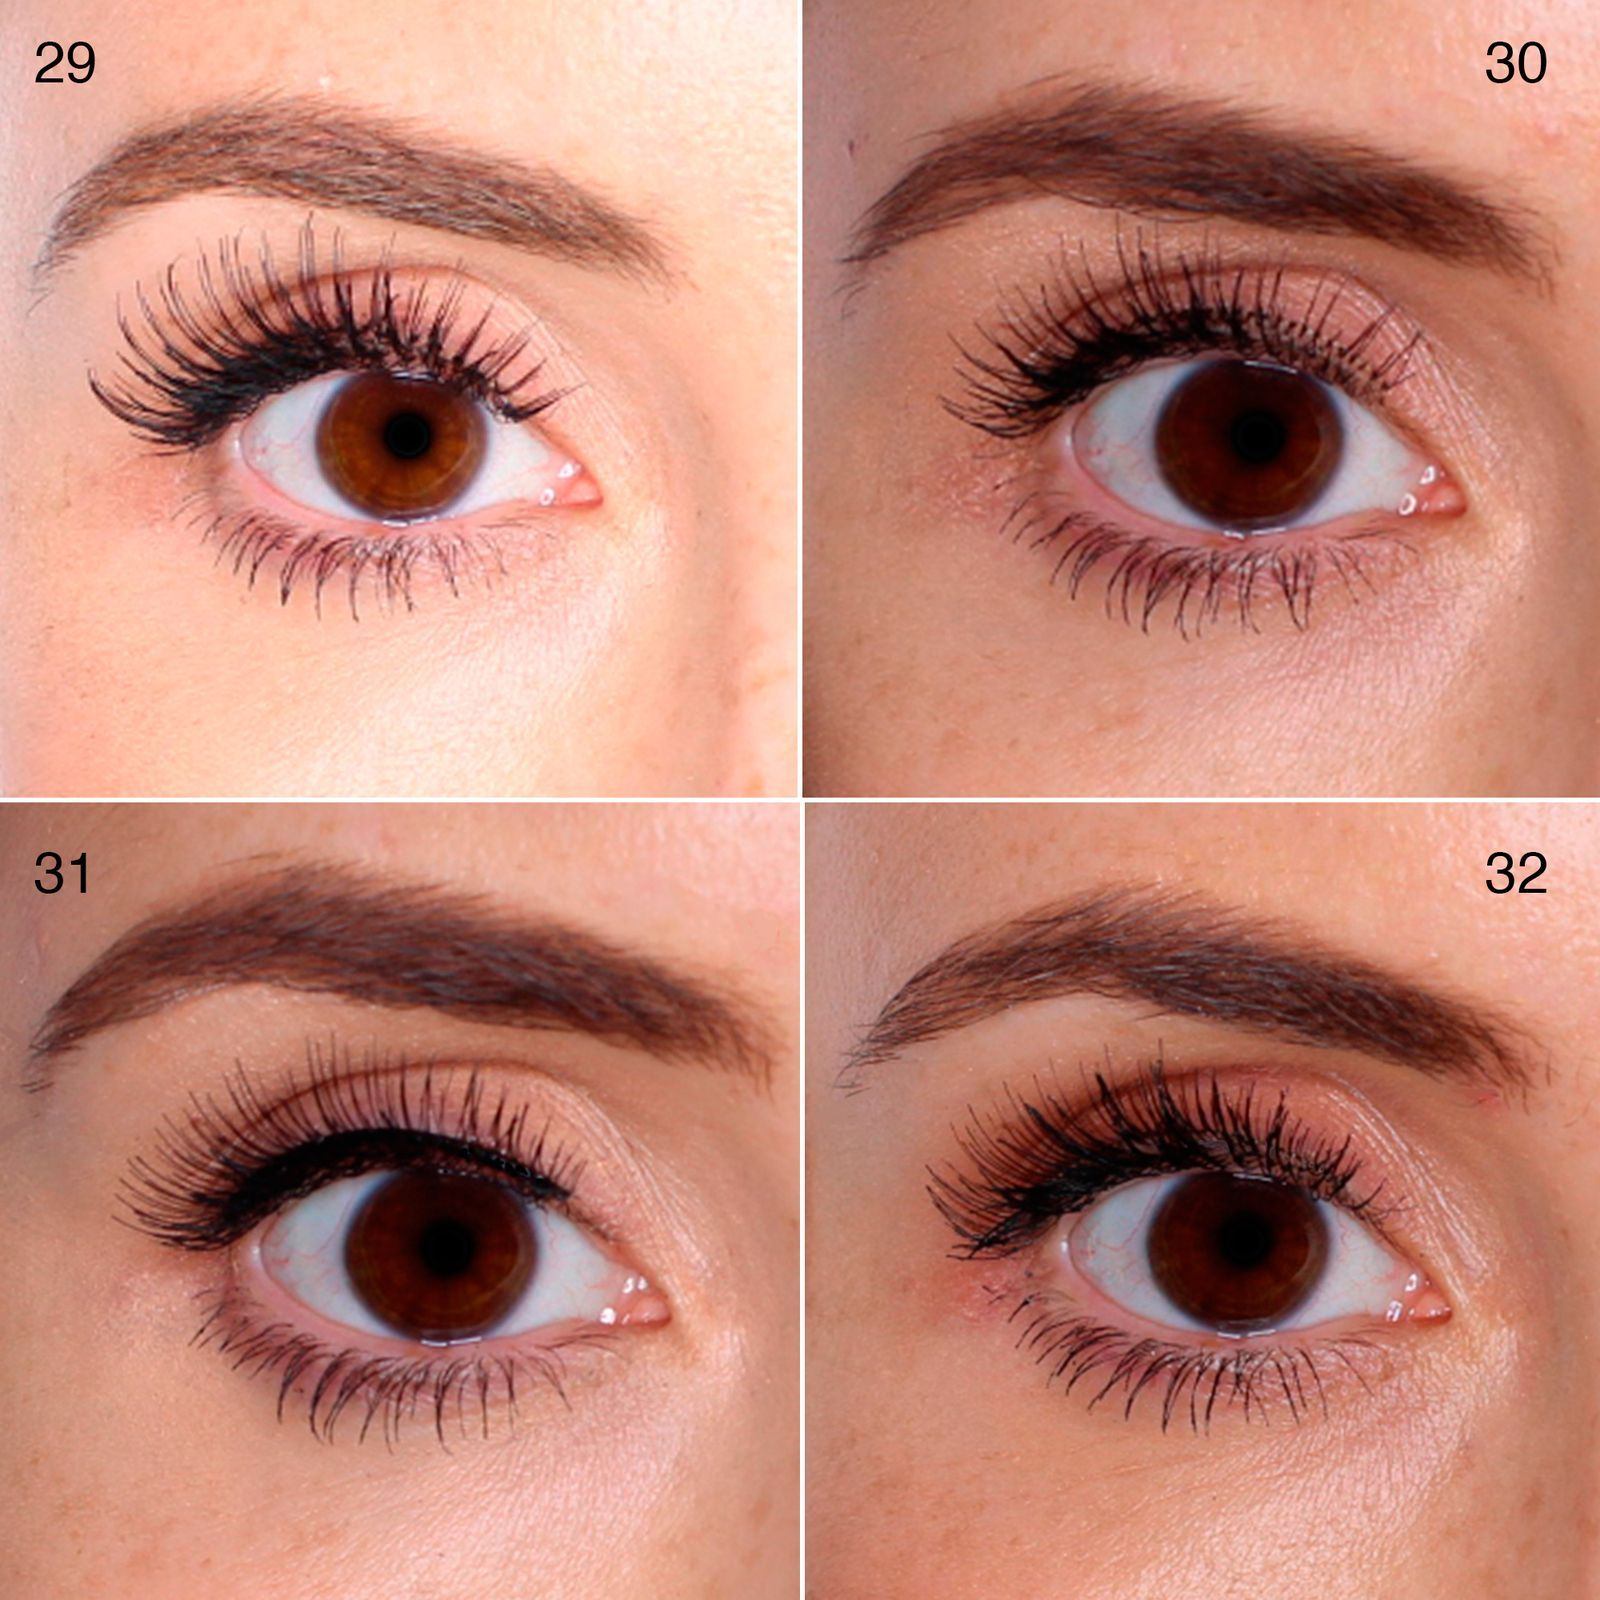 100 false lashes tested on ONE eye picture reviews Best